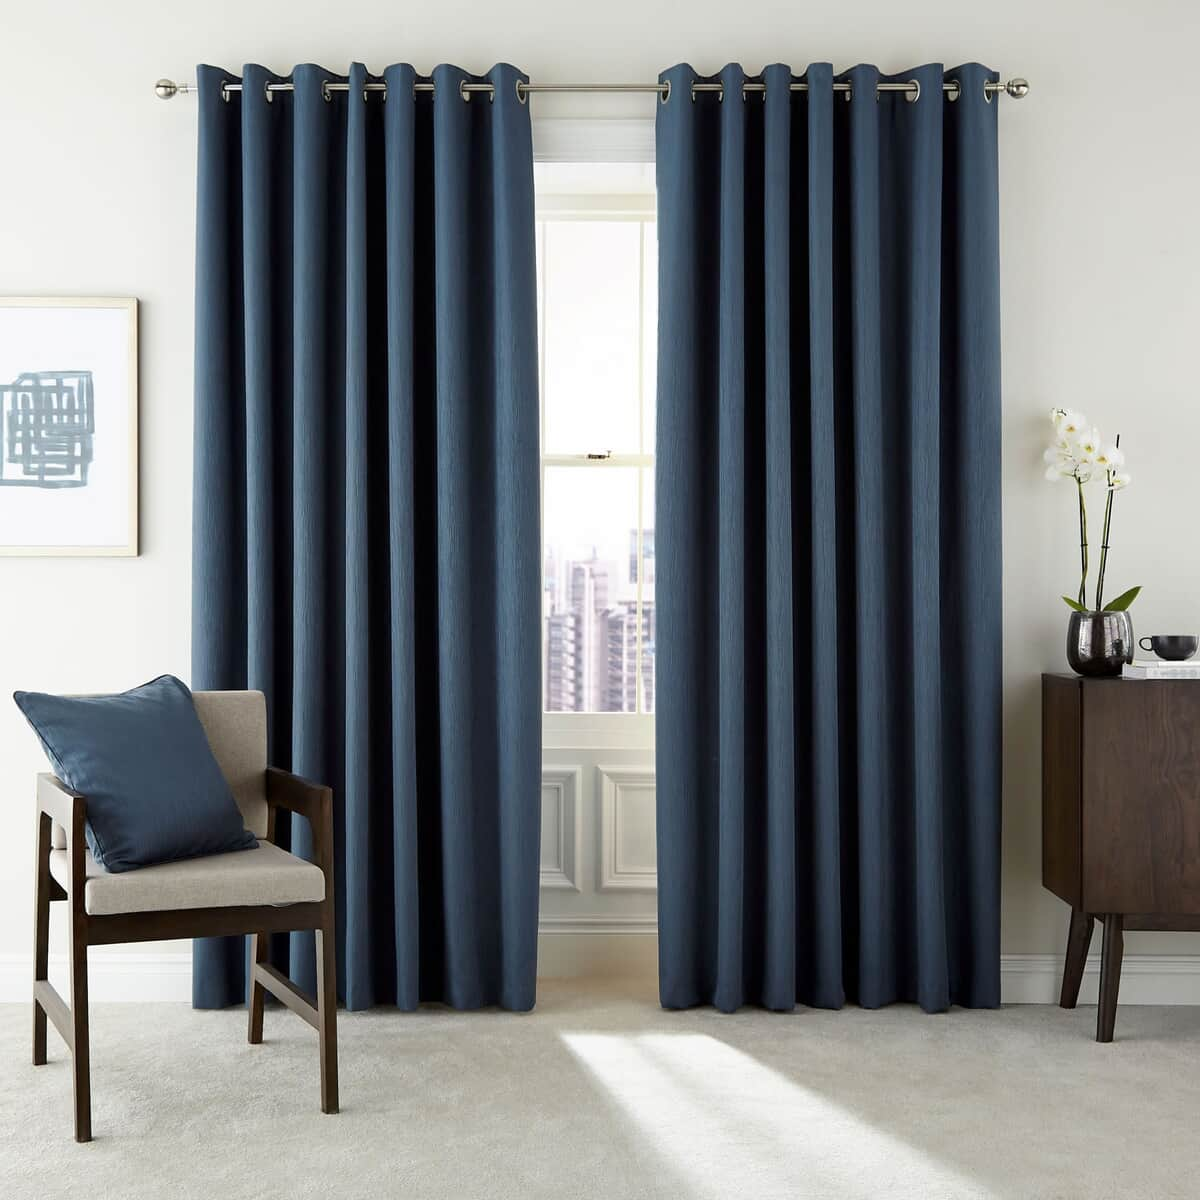 Peacock Blue Hotel Barcelo Prussian Blue Curtains large